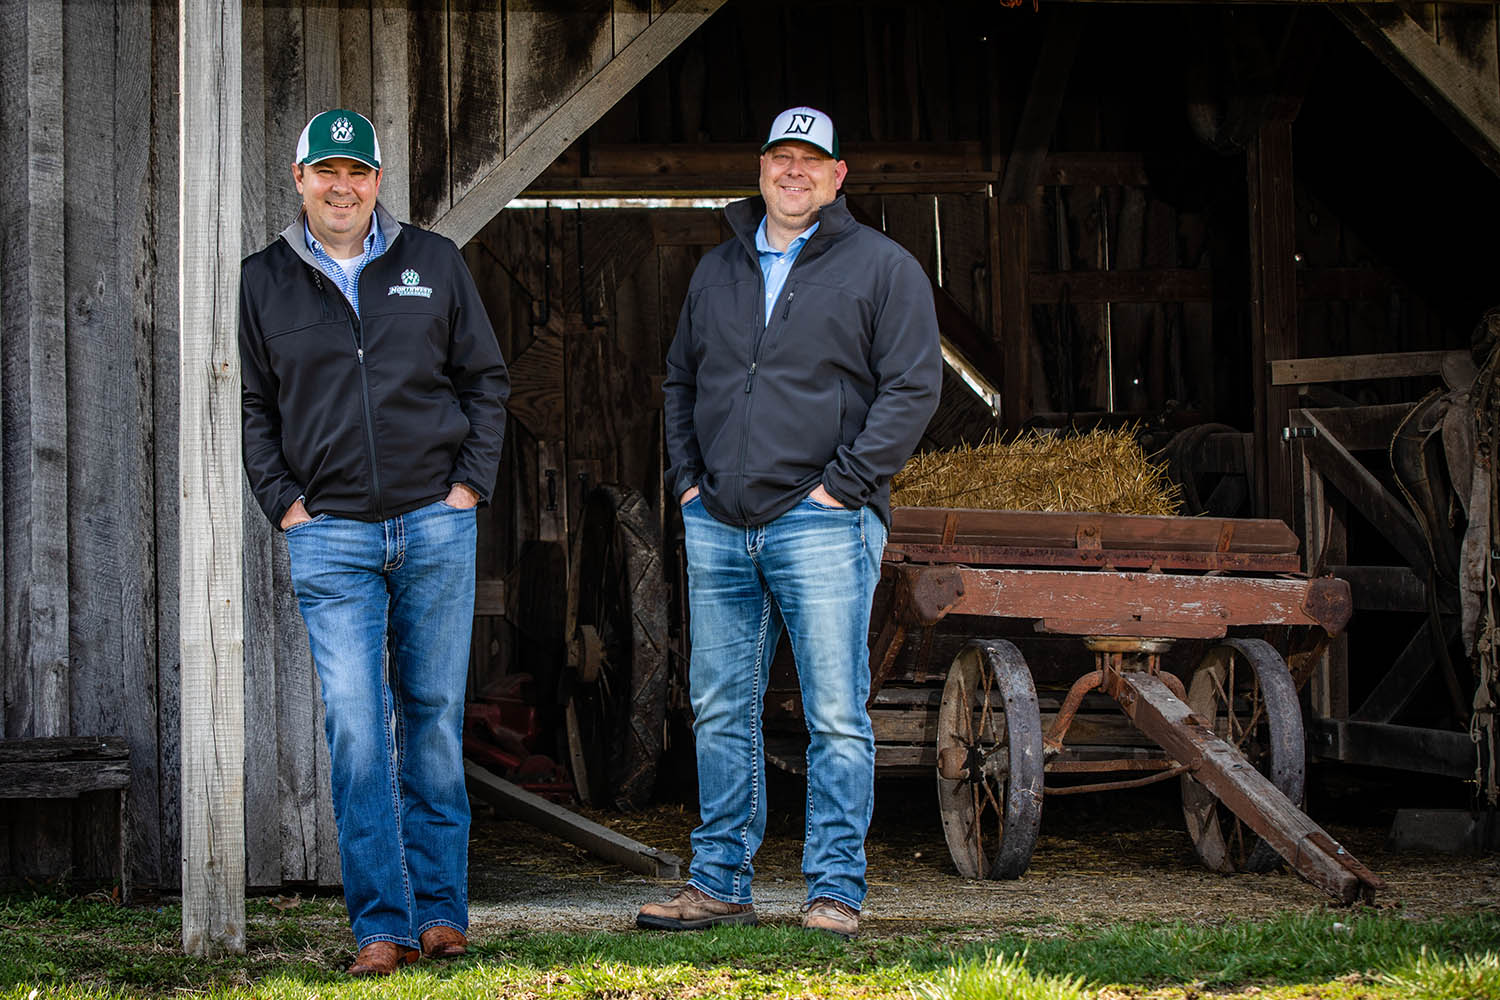 Northwest education inspires brothers' support for ag learning center